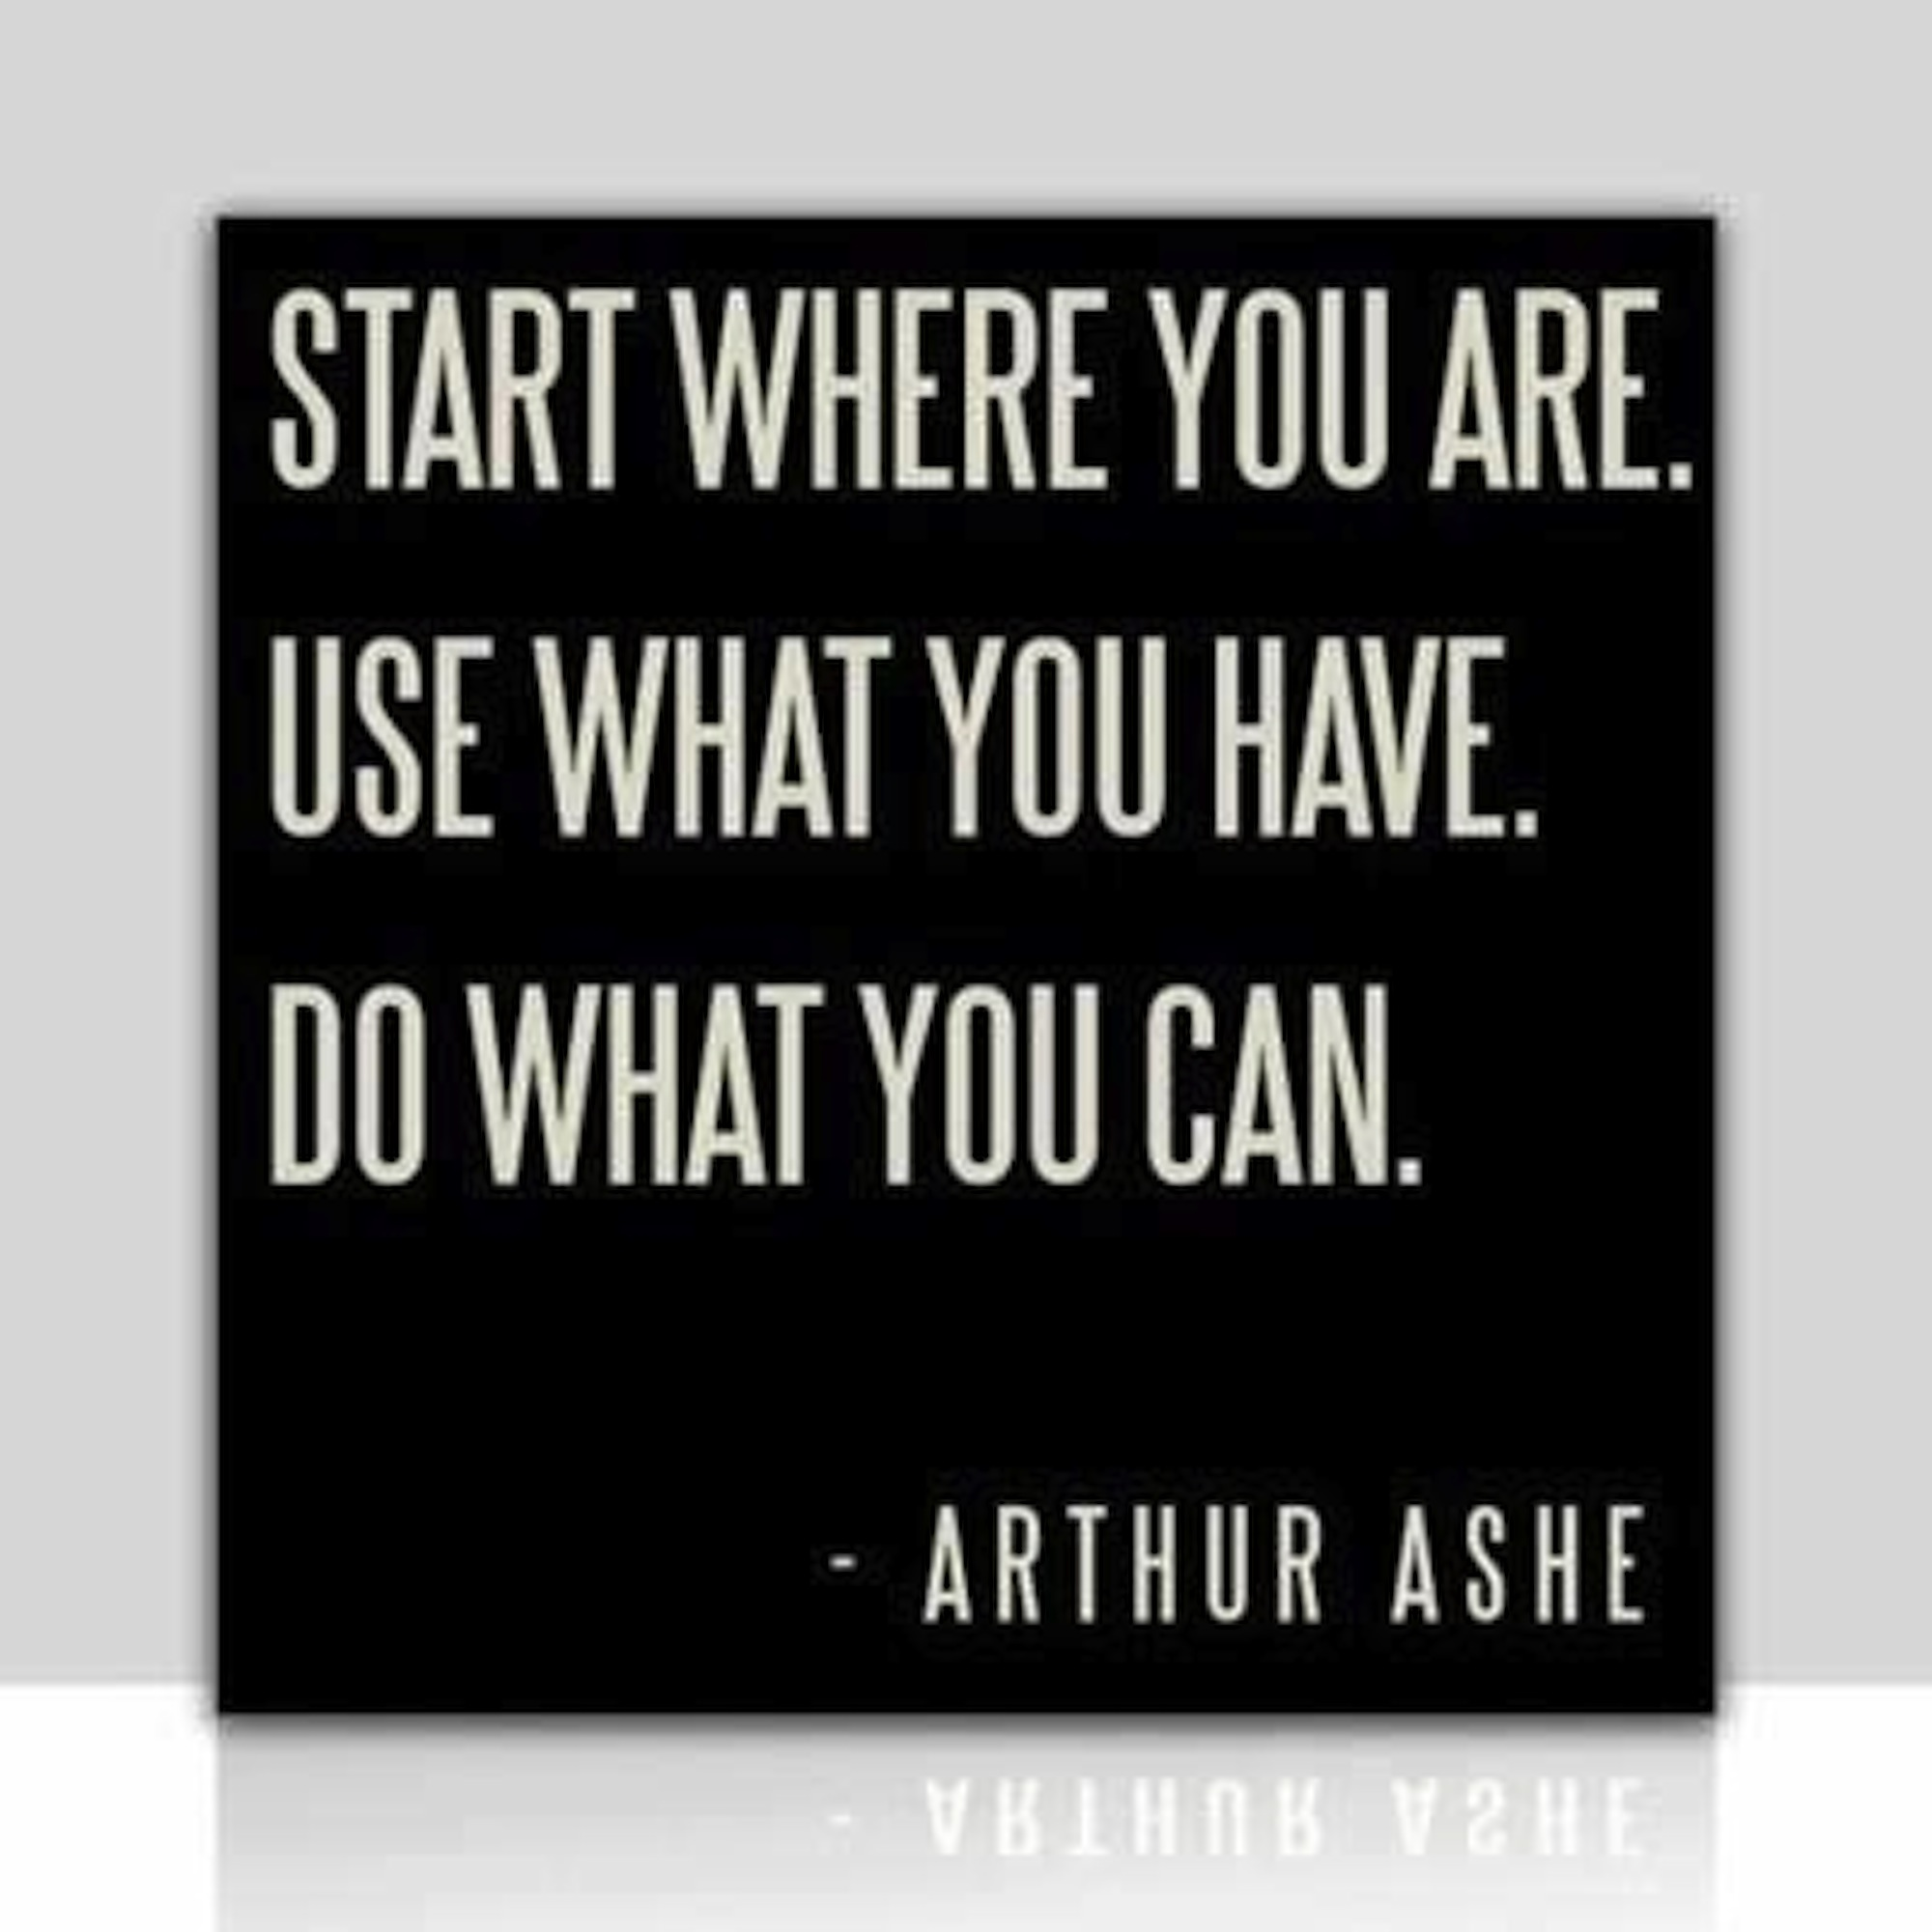 Arthur Ashe Quotes: 301 Moved Permanently